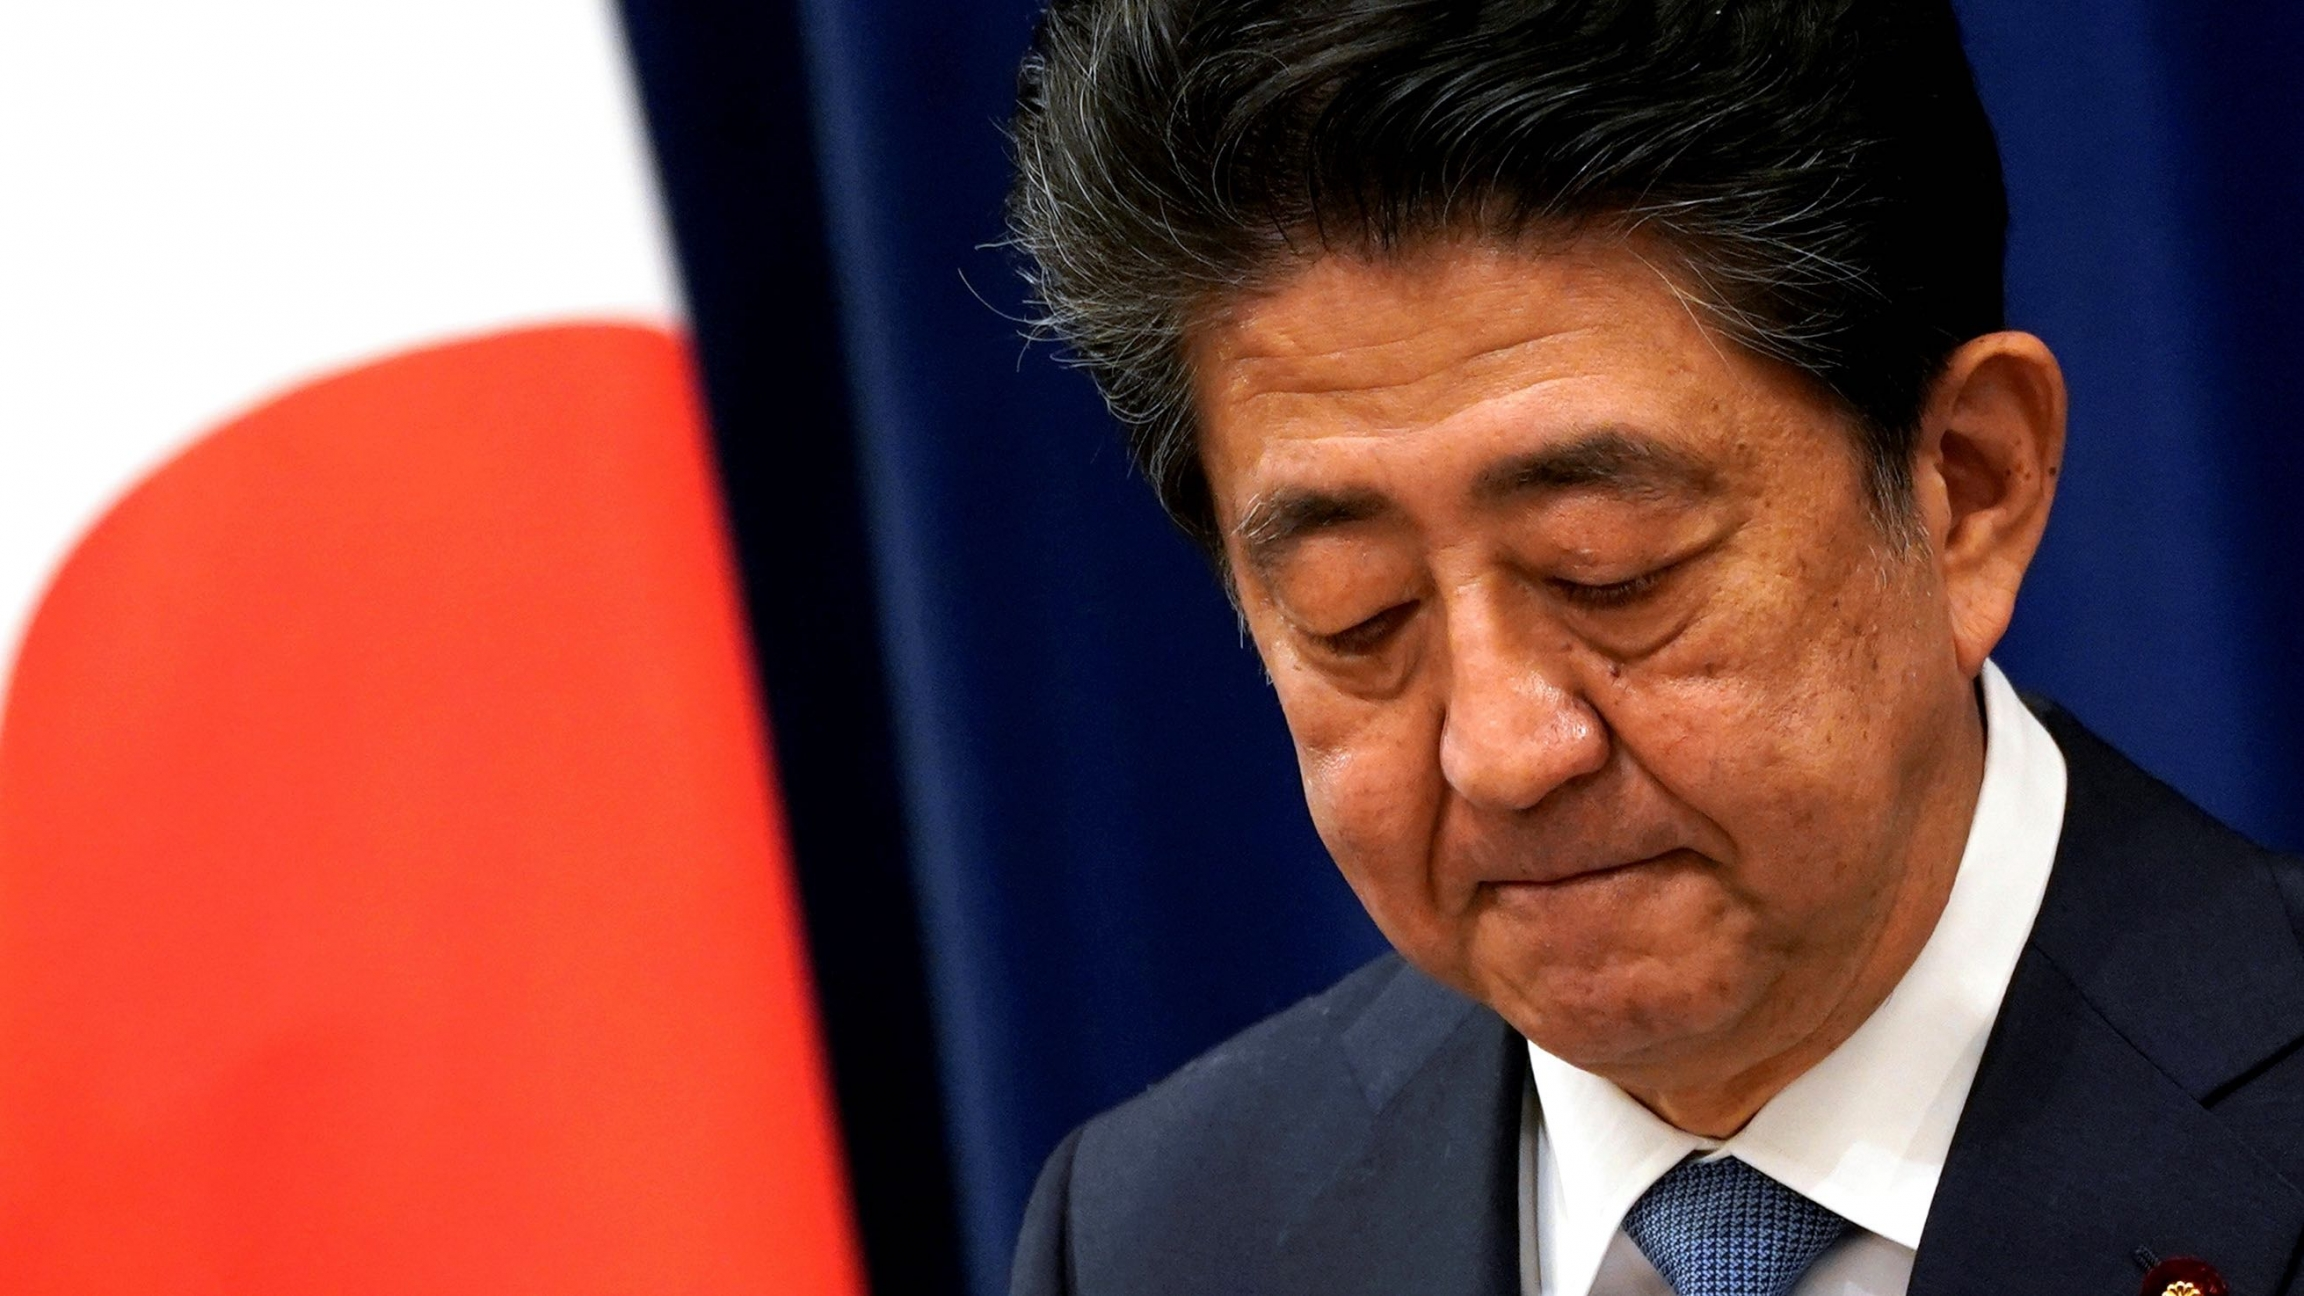 Japanese Prime Minister Shinzō Abe reacts during a news conference at the prime minister's official residence in Tokyo, Aug.28, 2020.